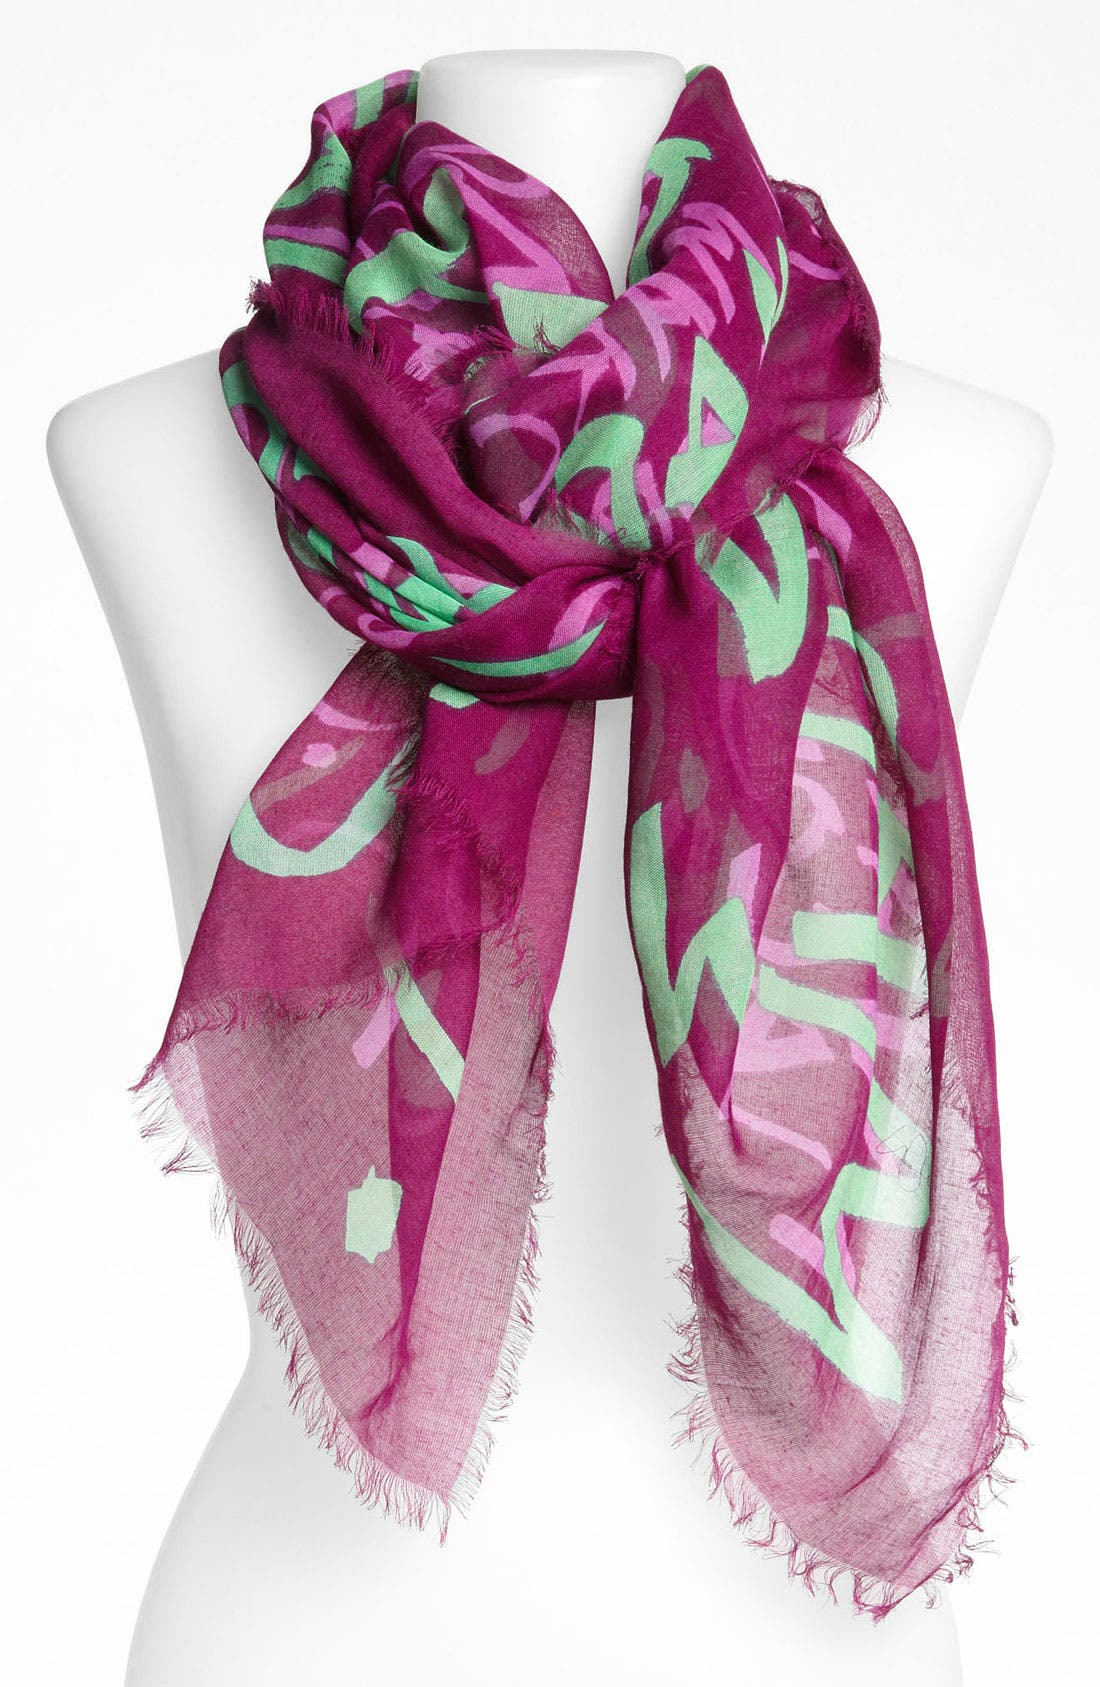 Alternate Image 1 Selected - MARC BY MARC JACOBS 'MBMJ' Print Scarf